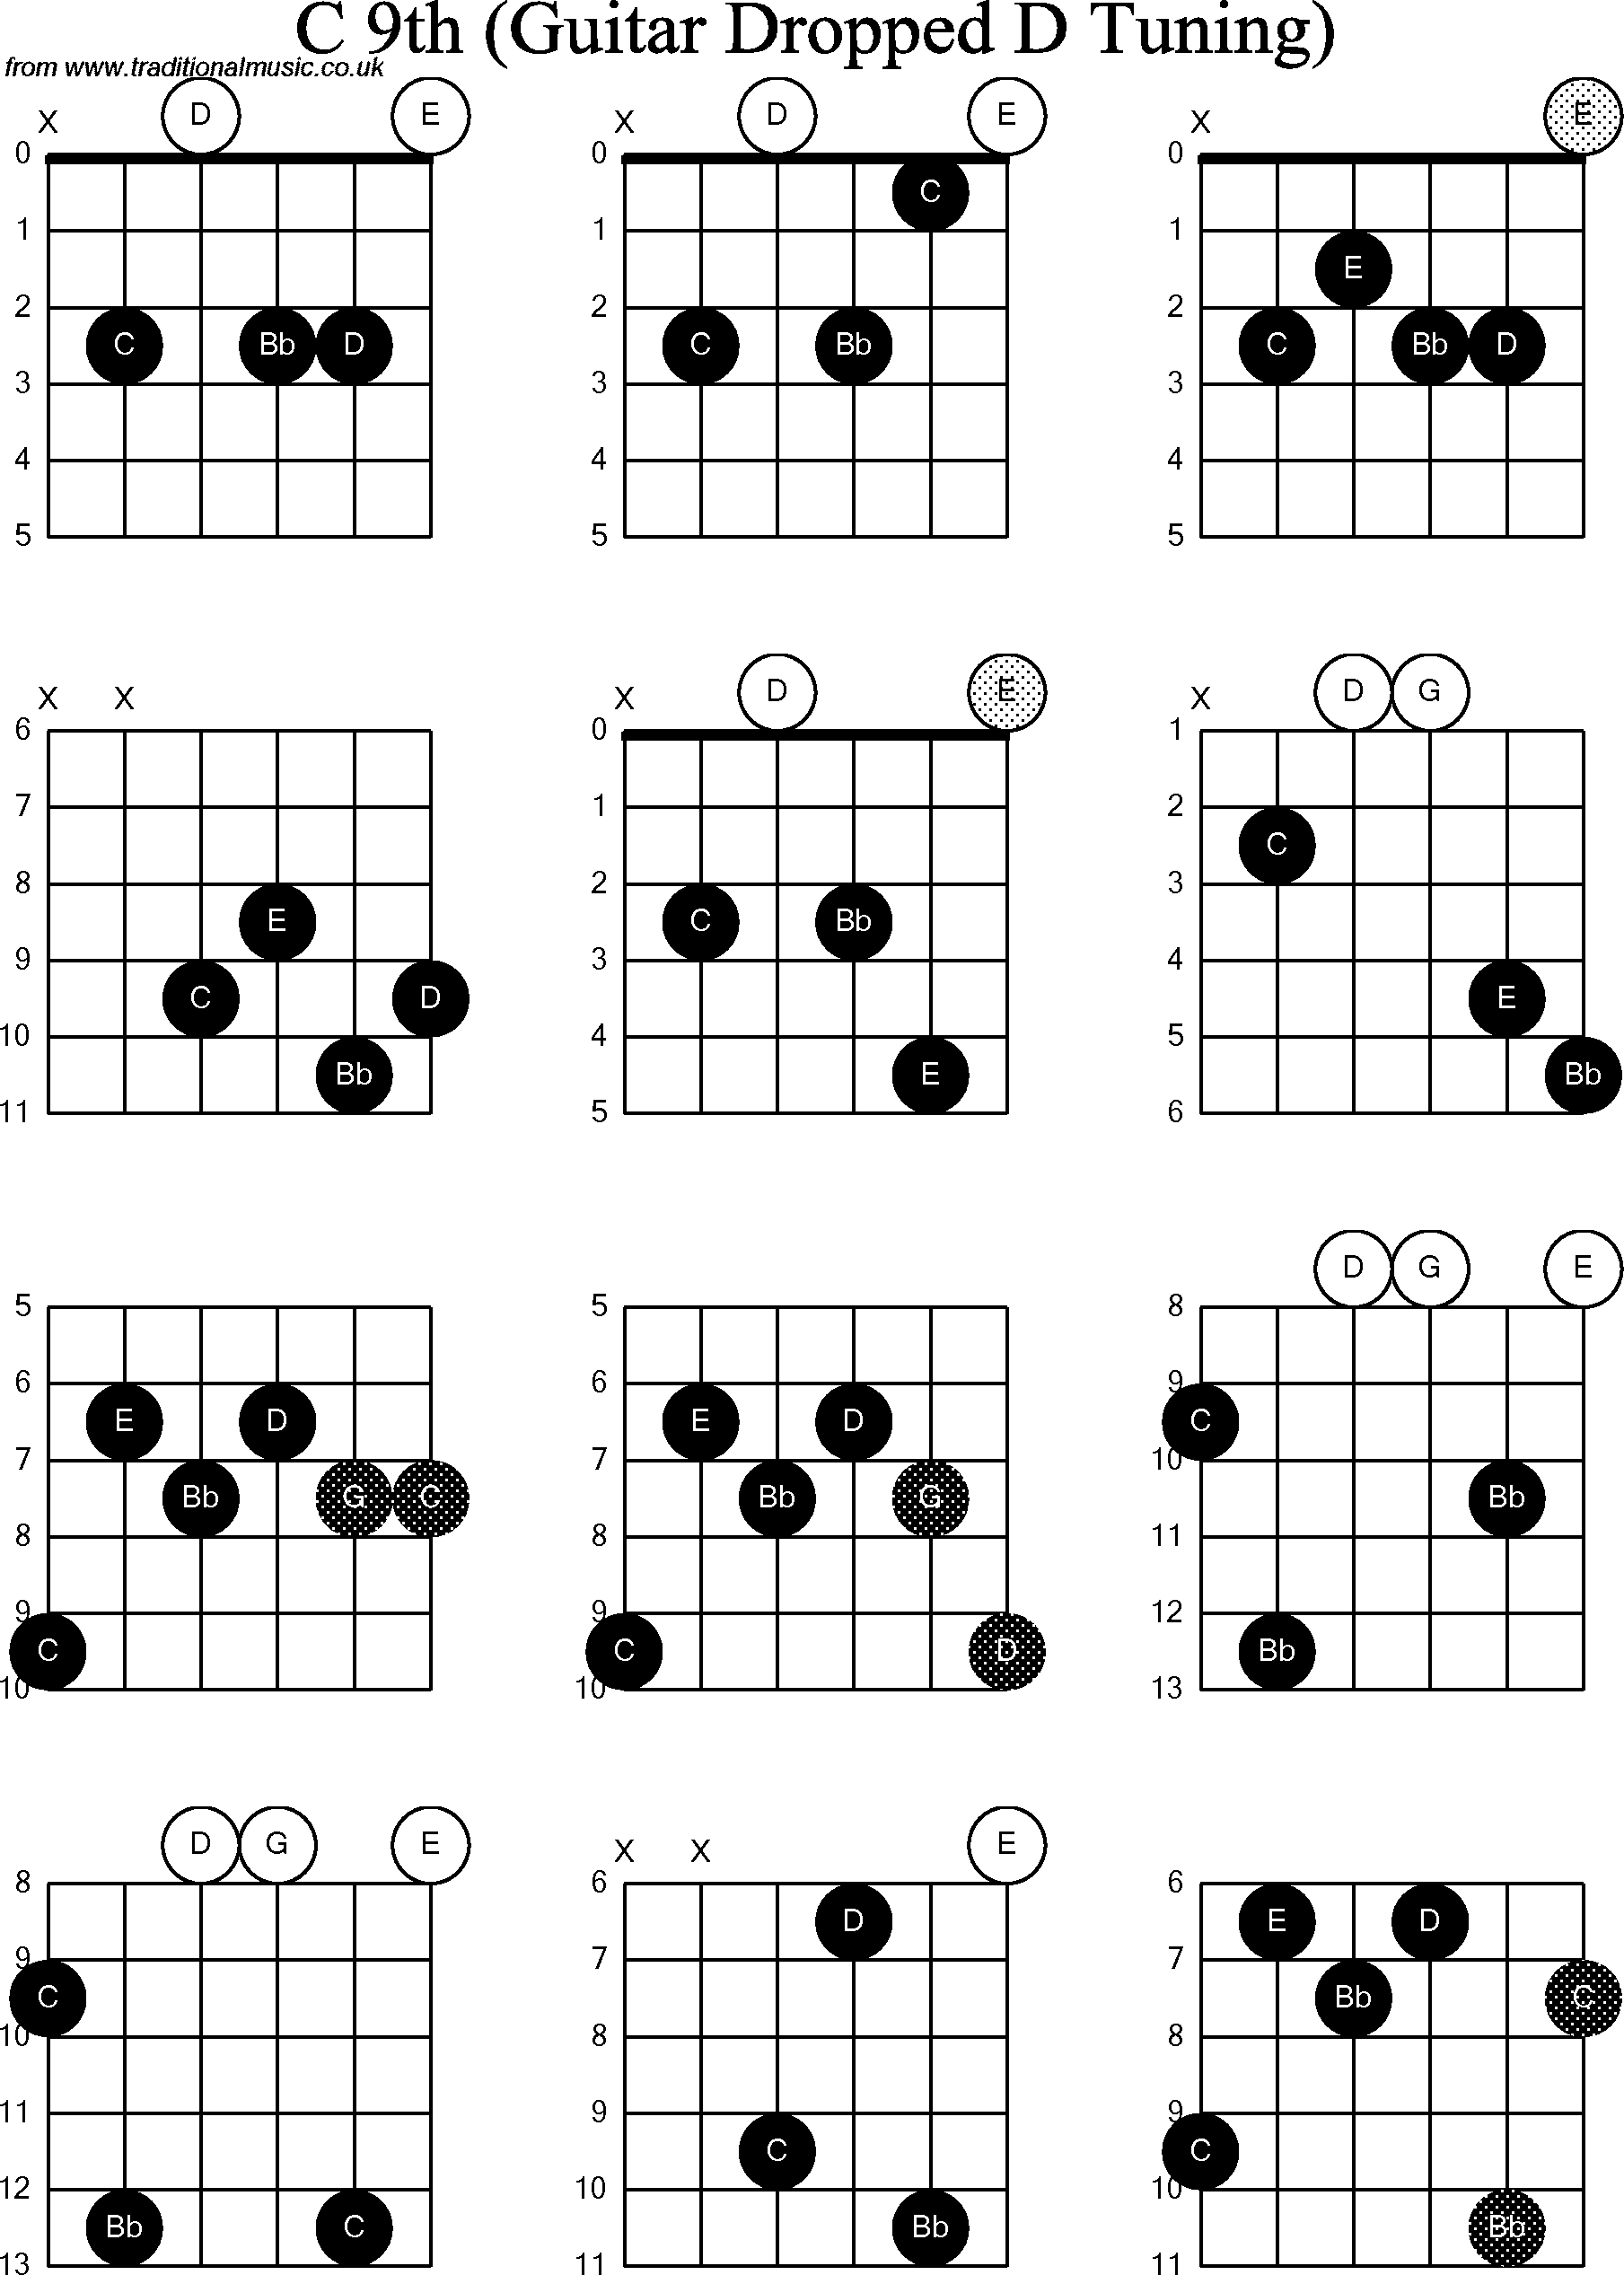 Chord Diagrams For Dropped D Guitardadgbe C9th